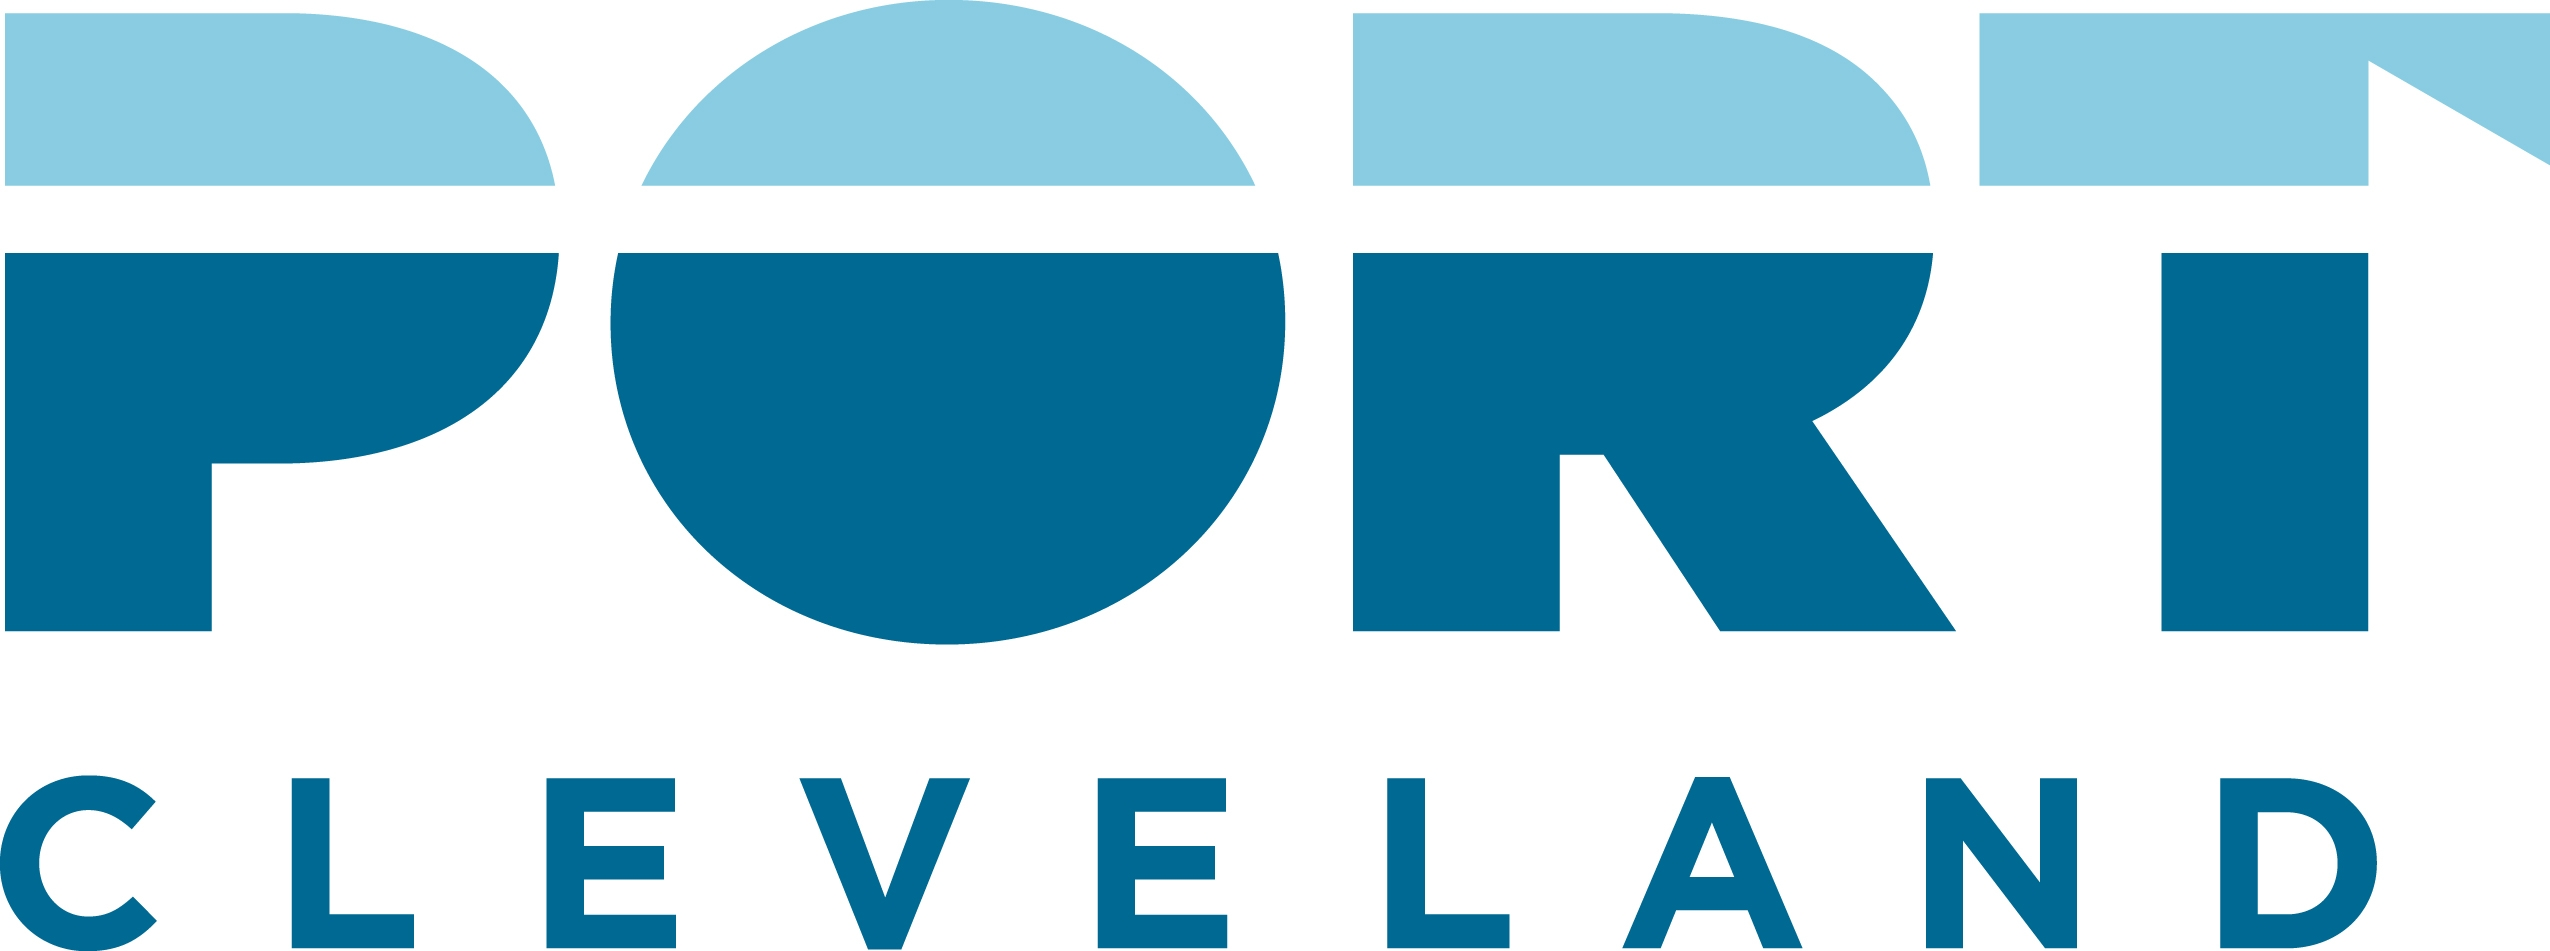 The Port of Cleveland logo